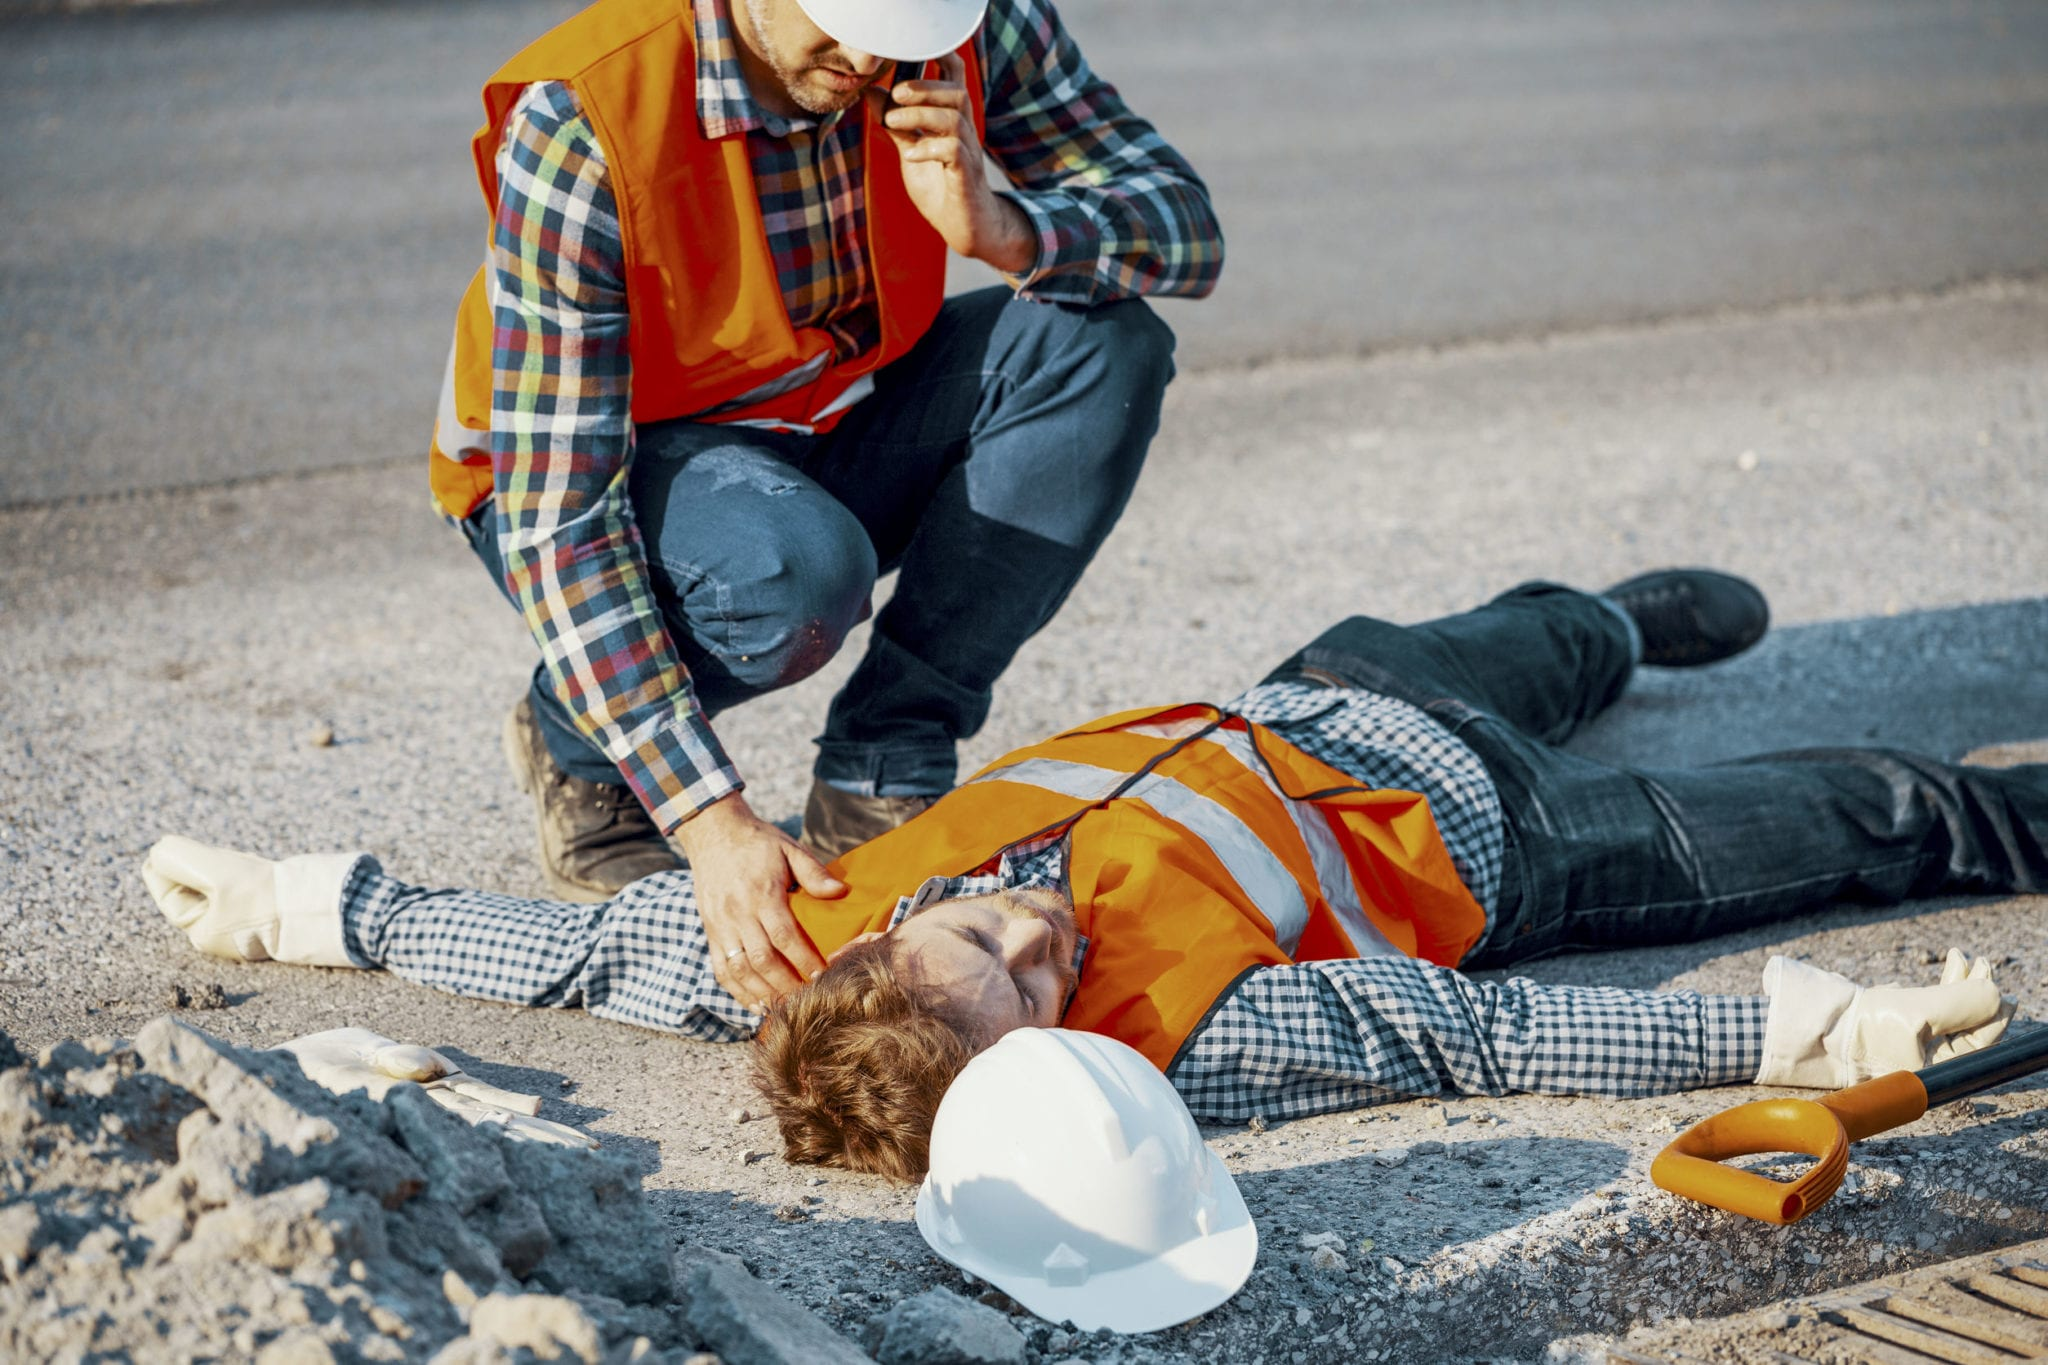 How Do Construction Crane Accidents Happen in Texas?